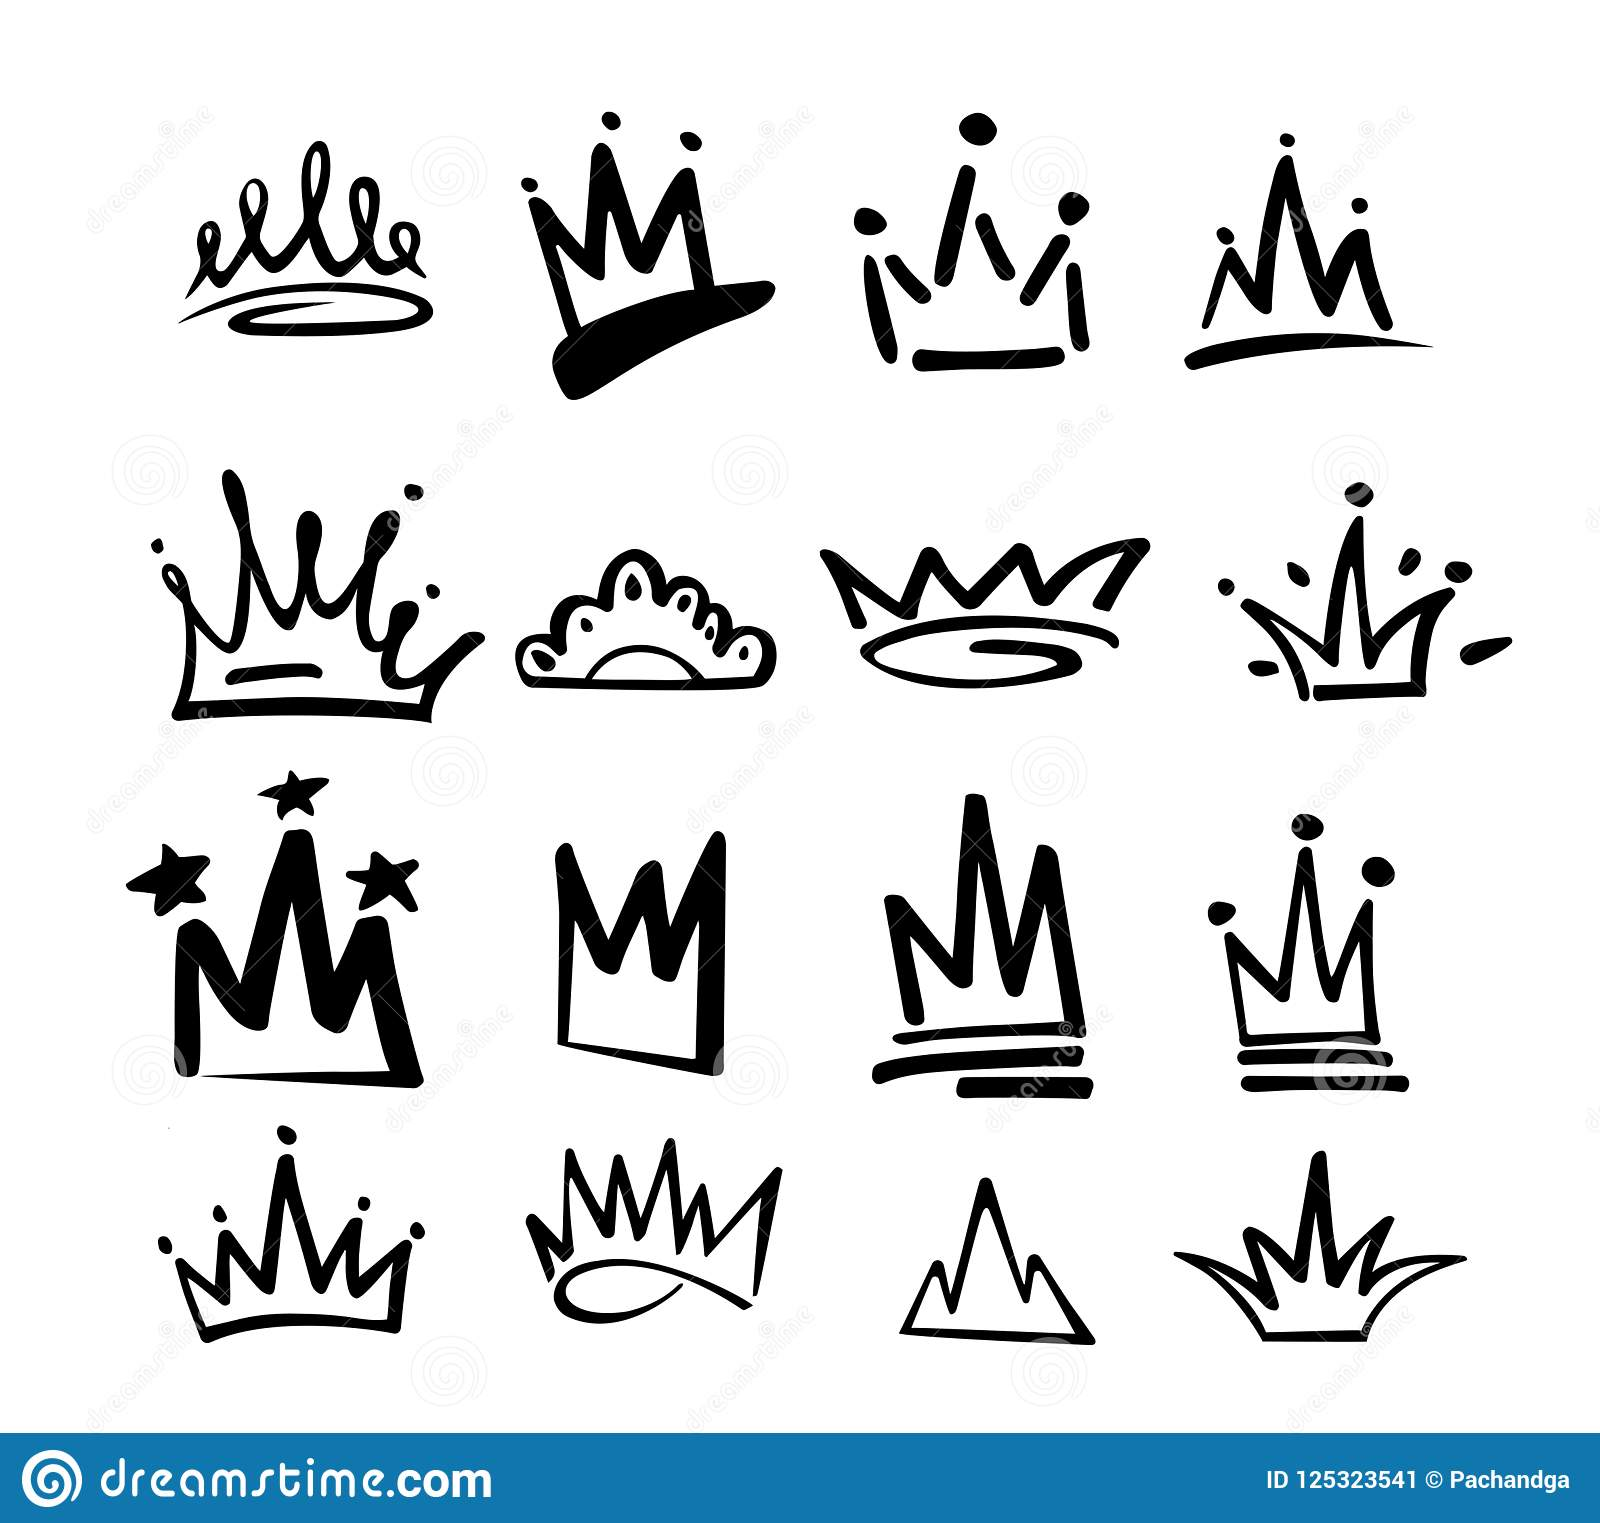 Crown Logo Graffiti Icon Black Elements Isolated On White